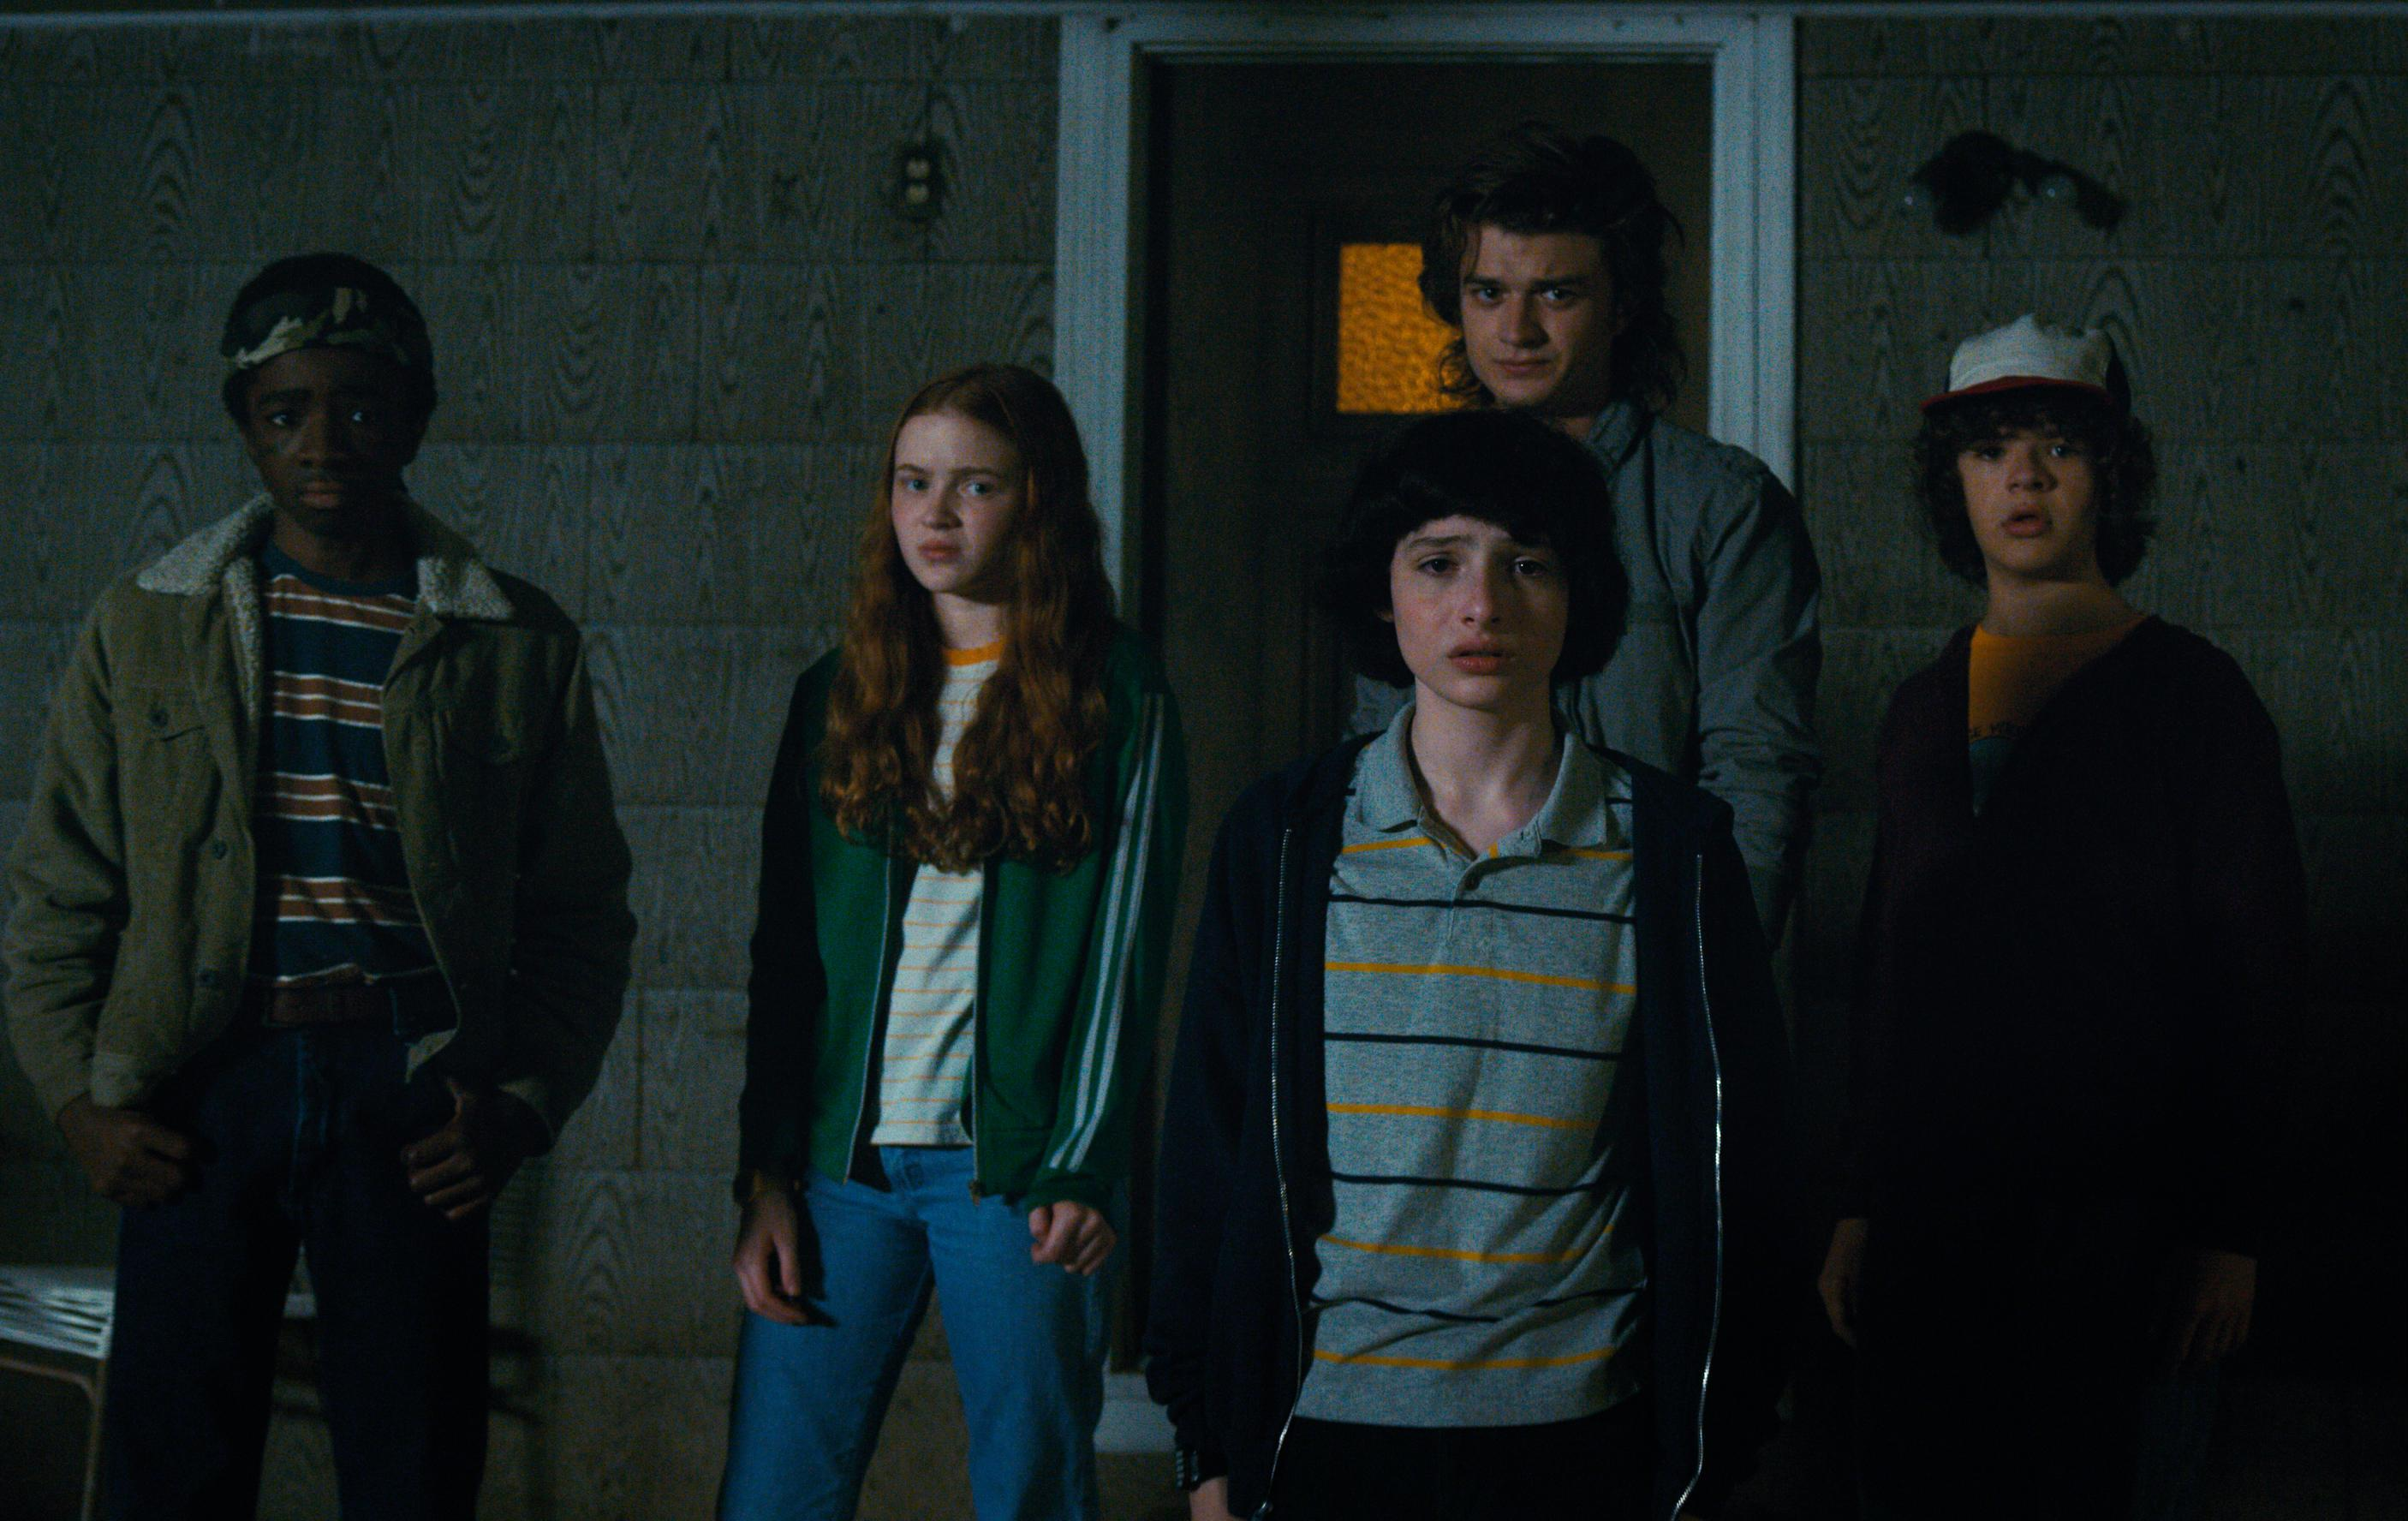 'Stranger Things' is coming back for a third season